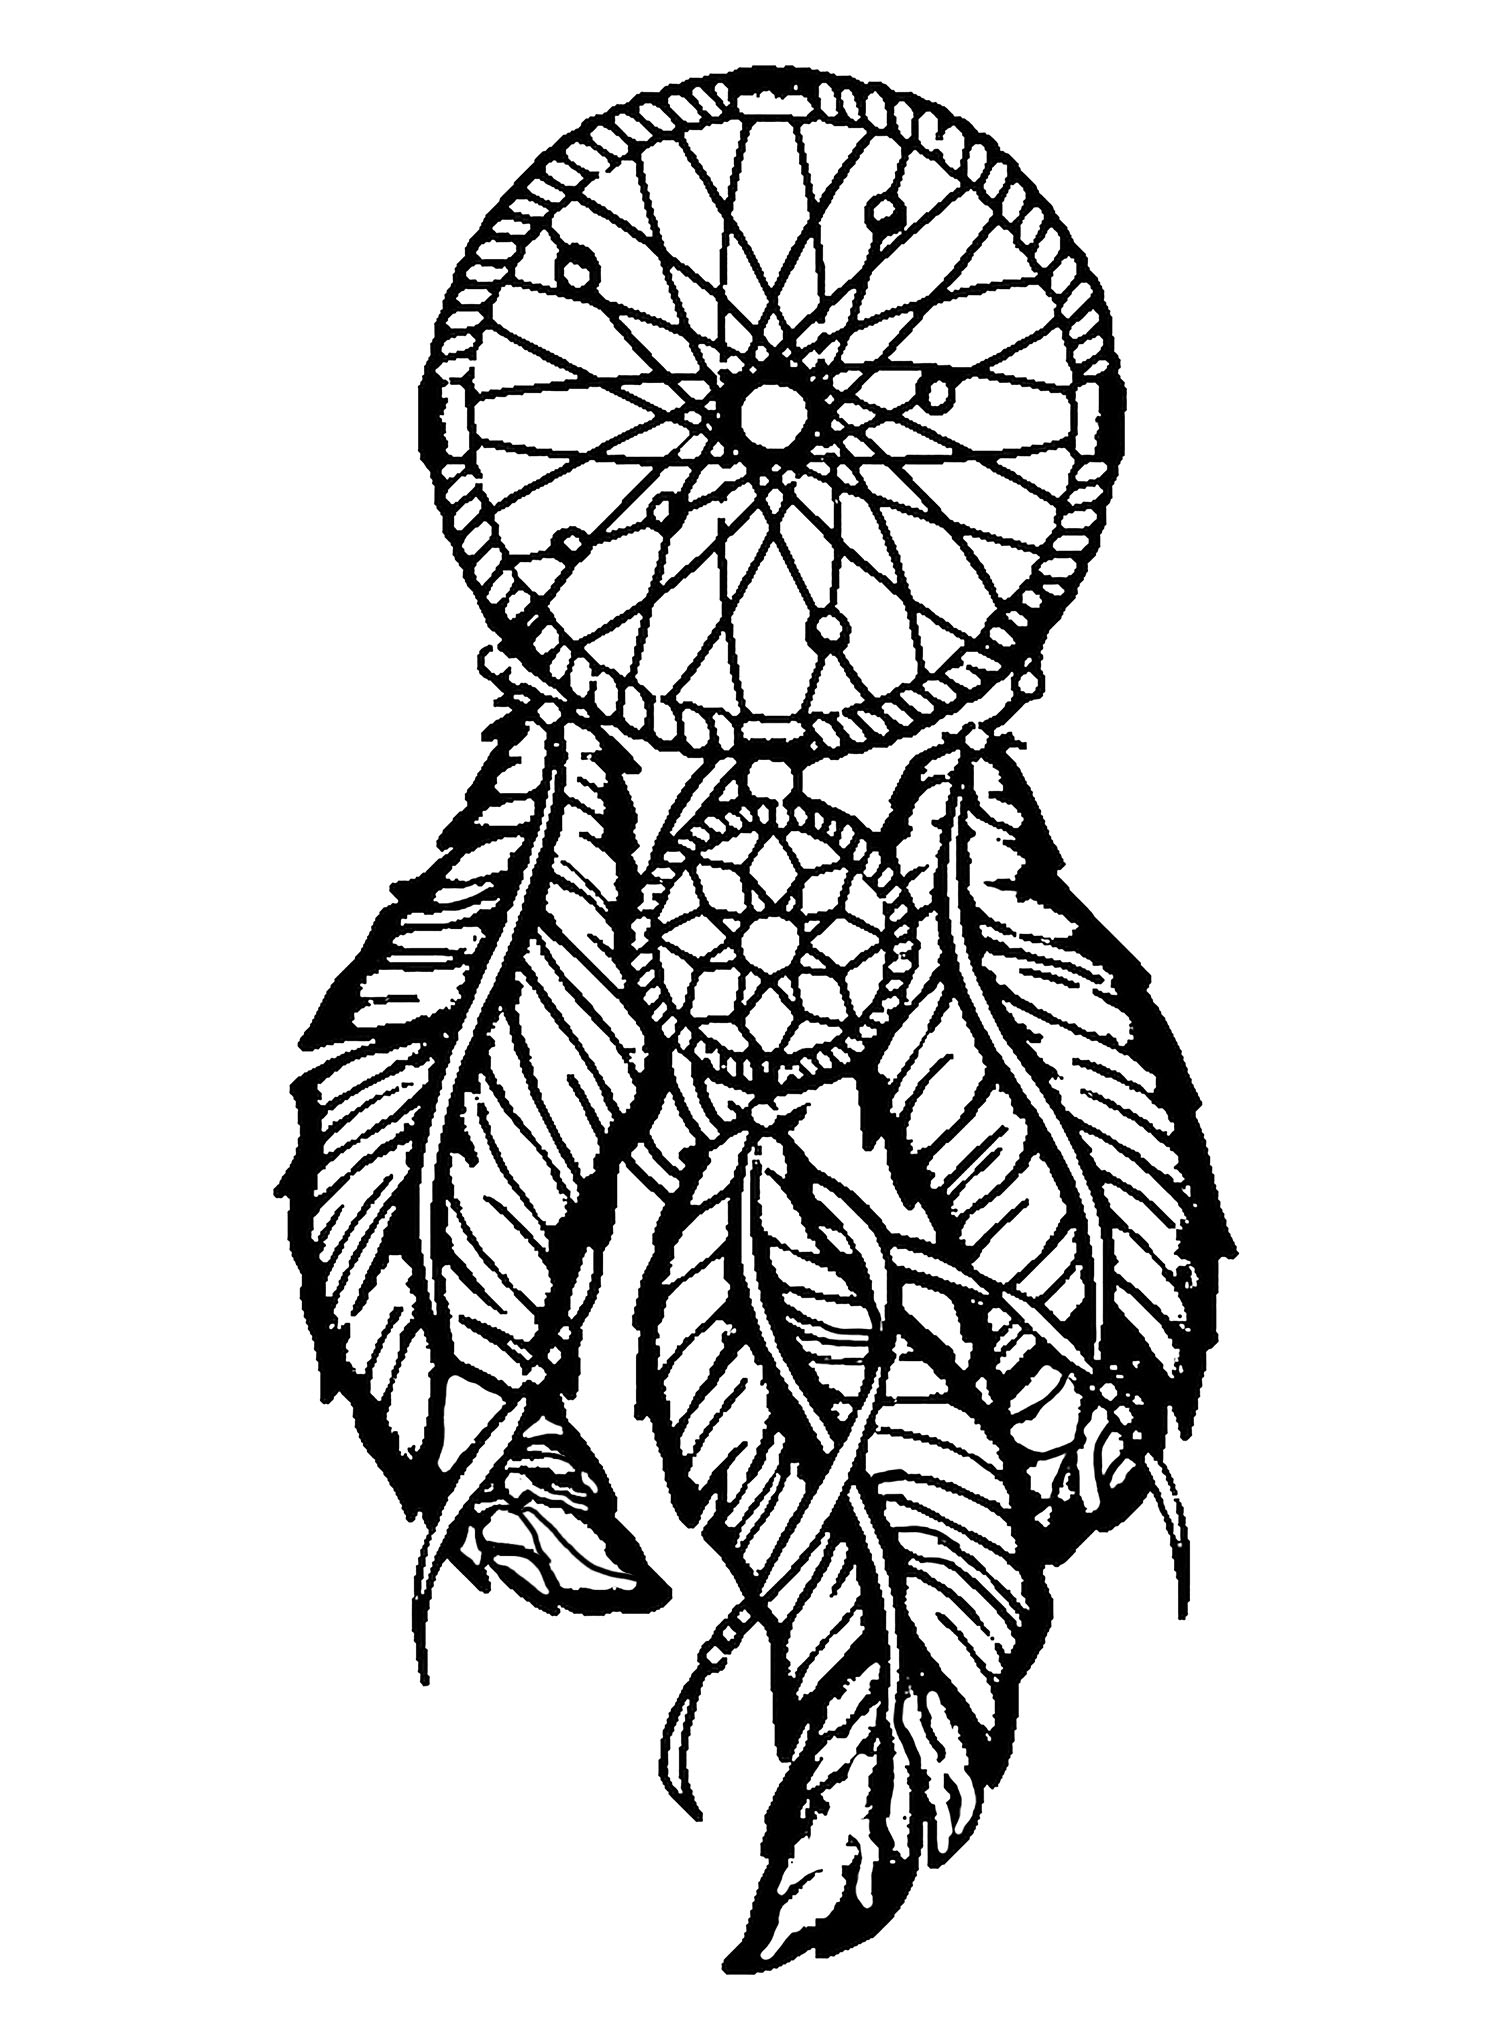 dream catcher coloring pages sunflower dream catcher adult coloring page pages dream catcher coloring